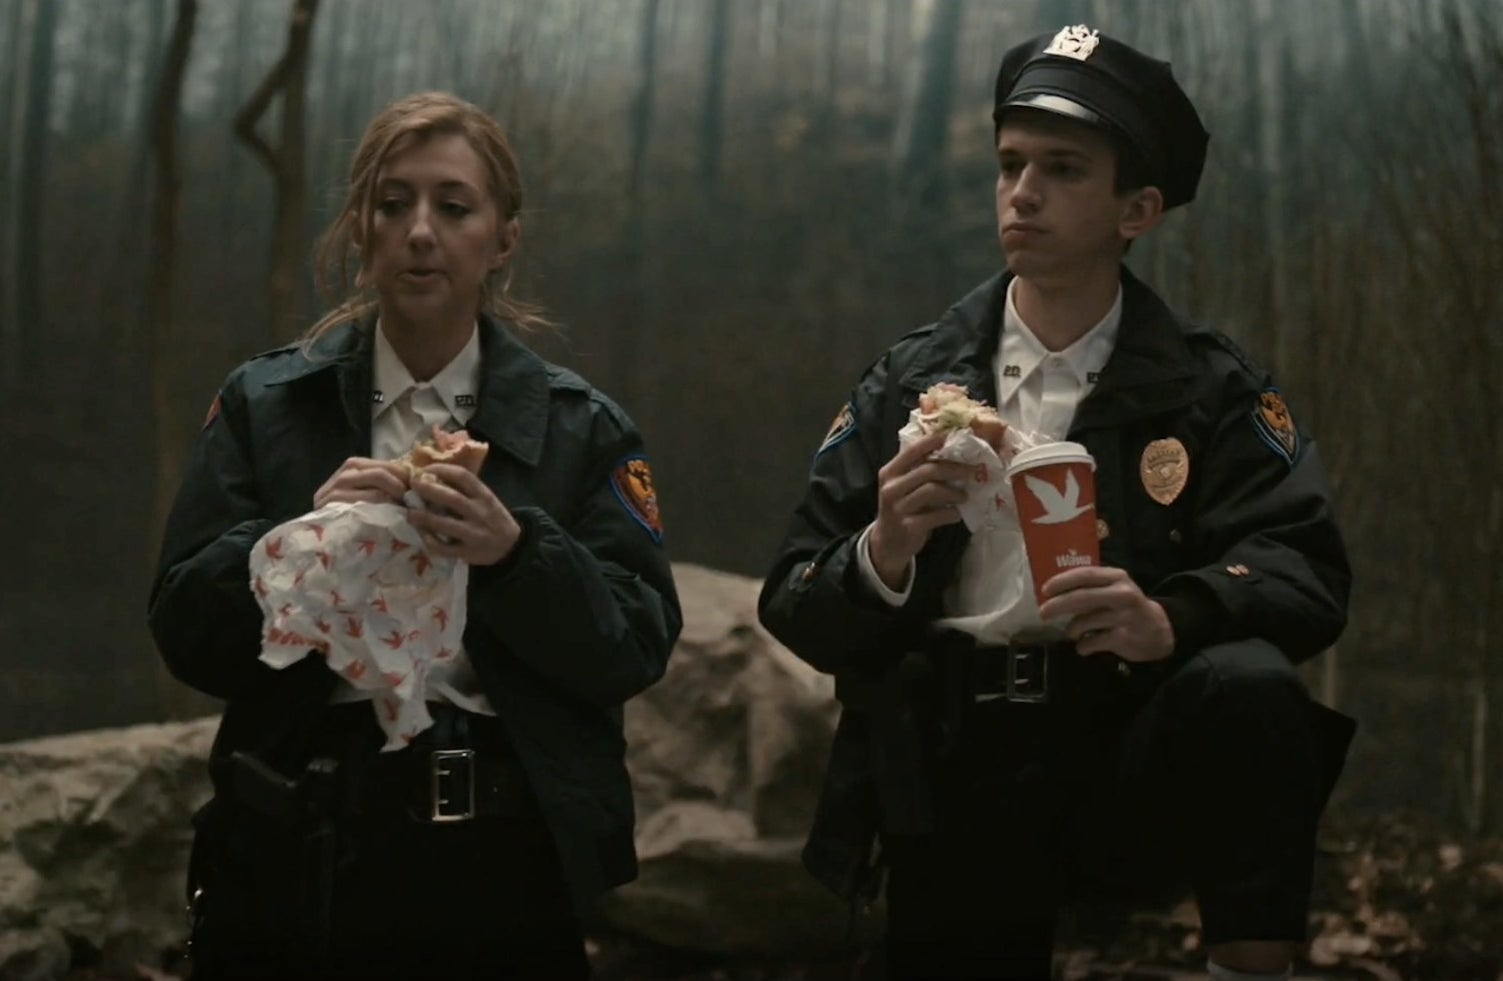 SNL cast members in cop uniform with Wawa sandwiches and coffee